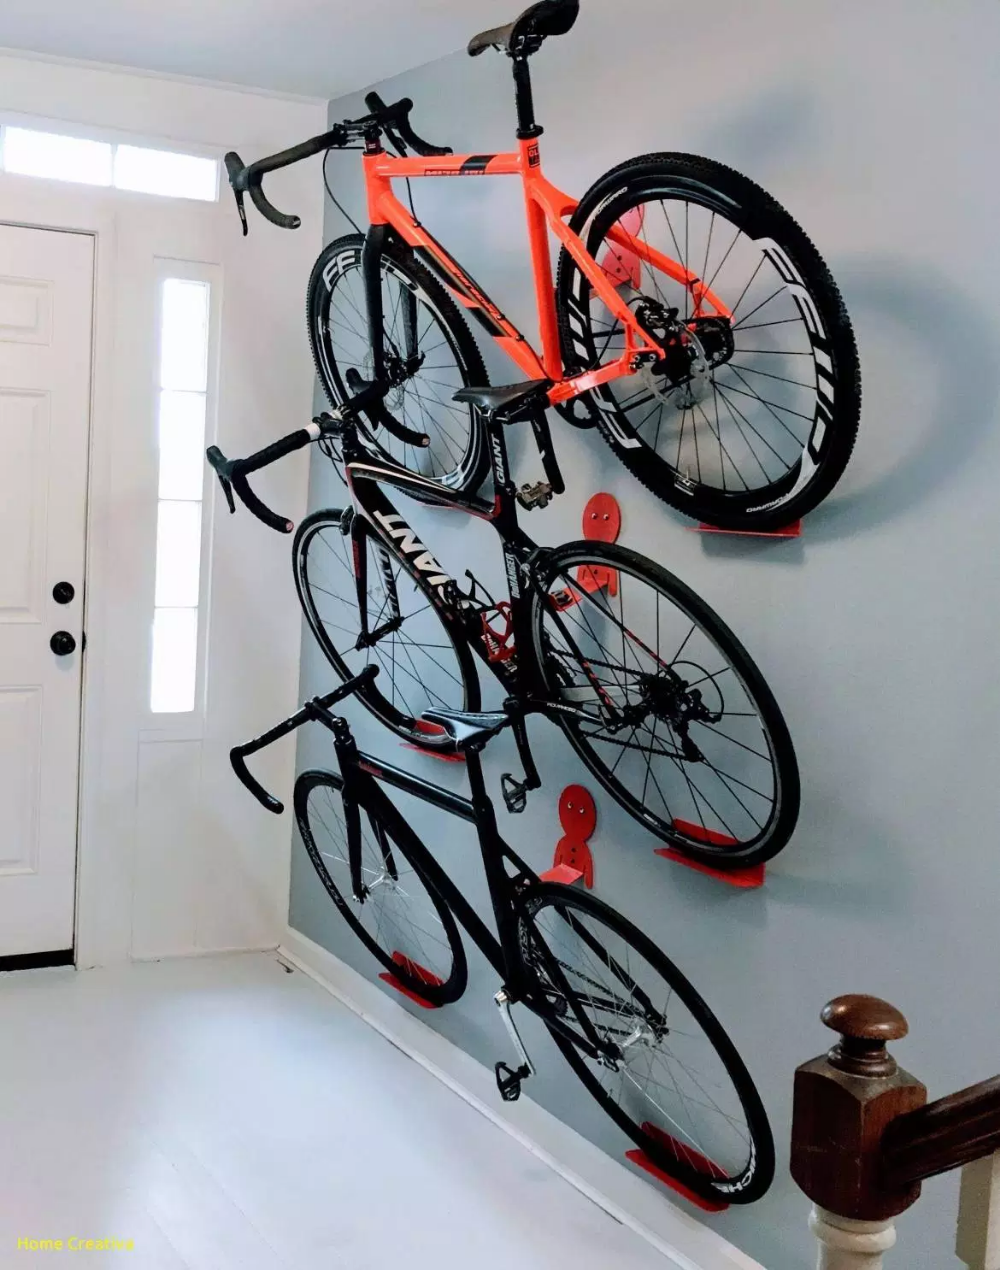 Best Bike Racks Garage Google Search Kreplenie Dlya Velosipeda